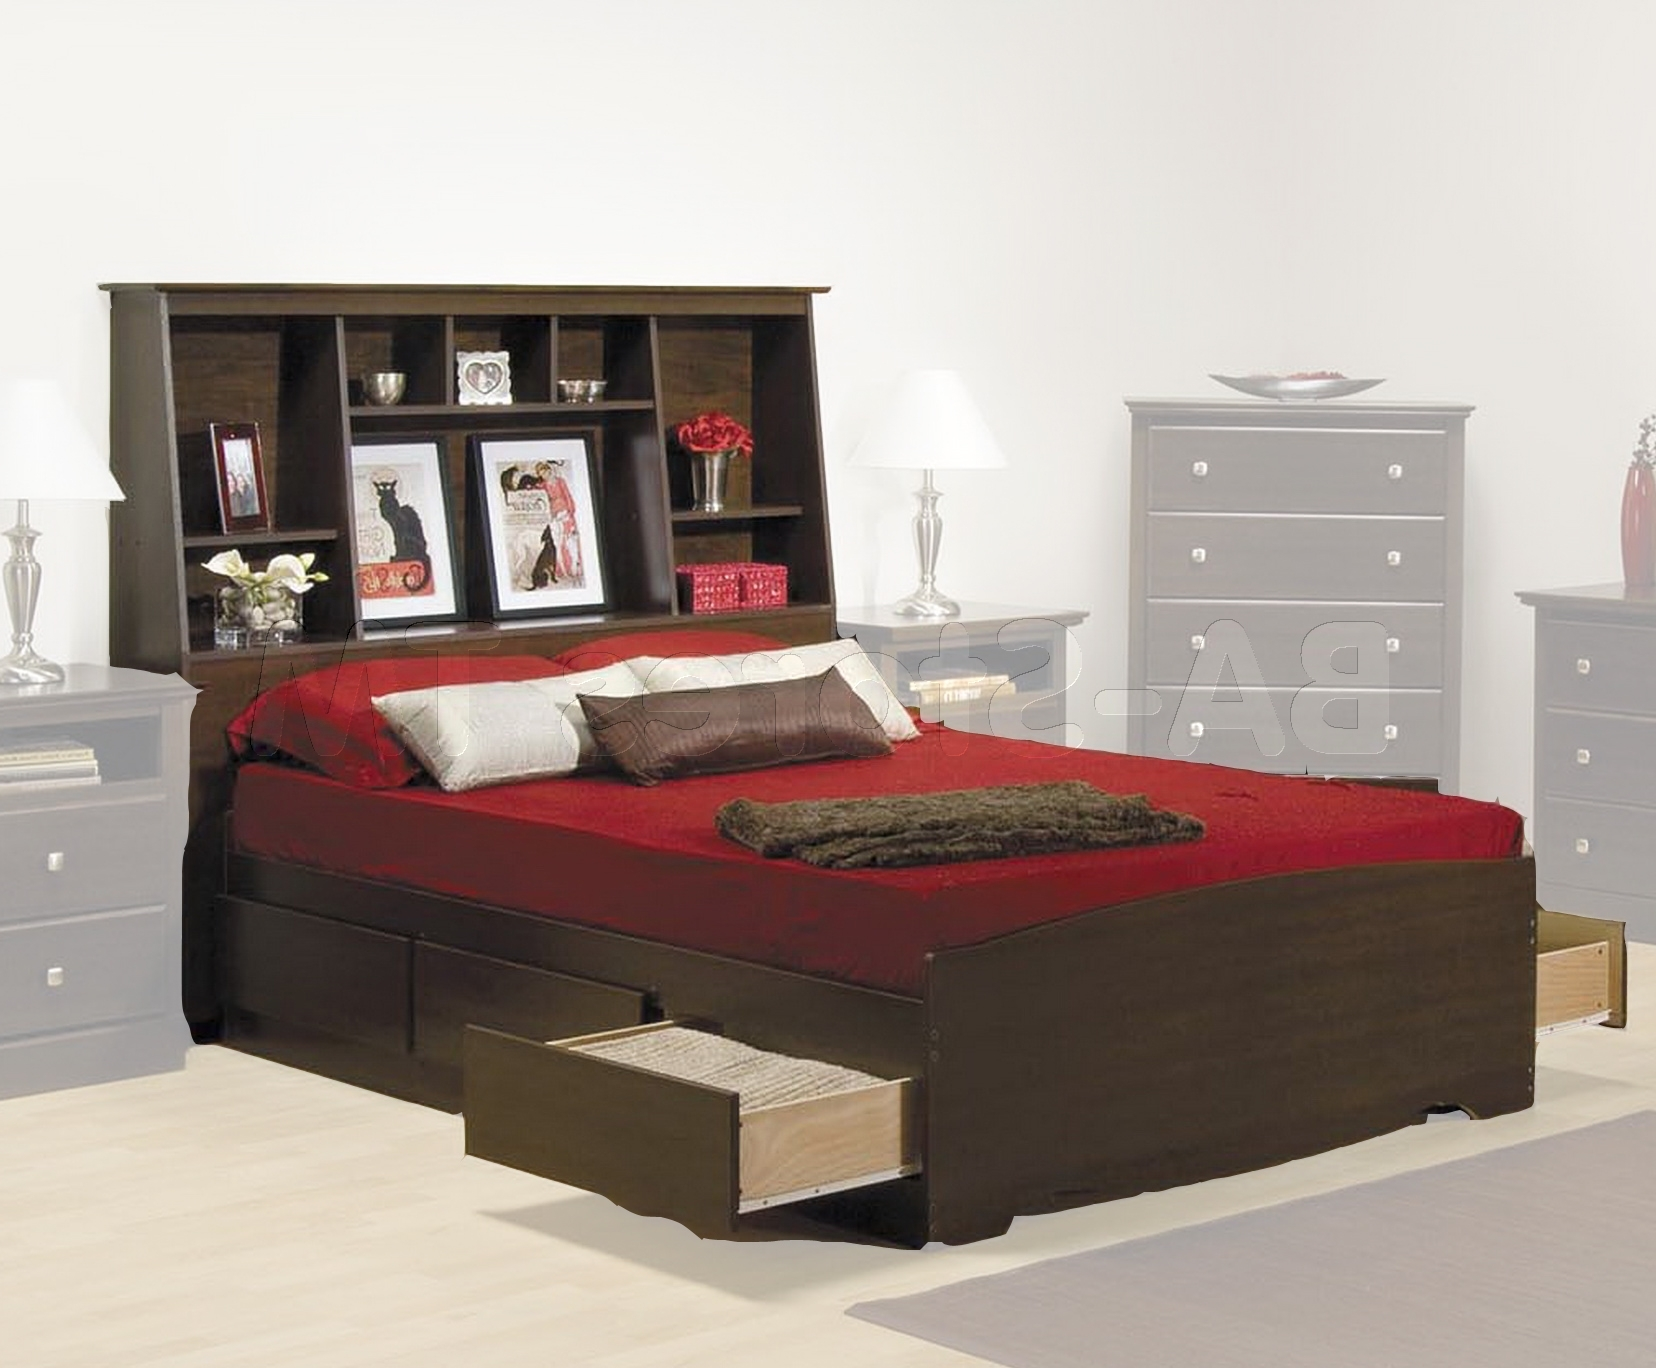 Marvelous Bookcase Headboard Queen Black White Cypress Storage Throughout Trendy Full Size Storage Bed With Bookcases Headboard (View 3 of 15)